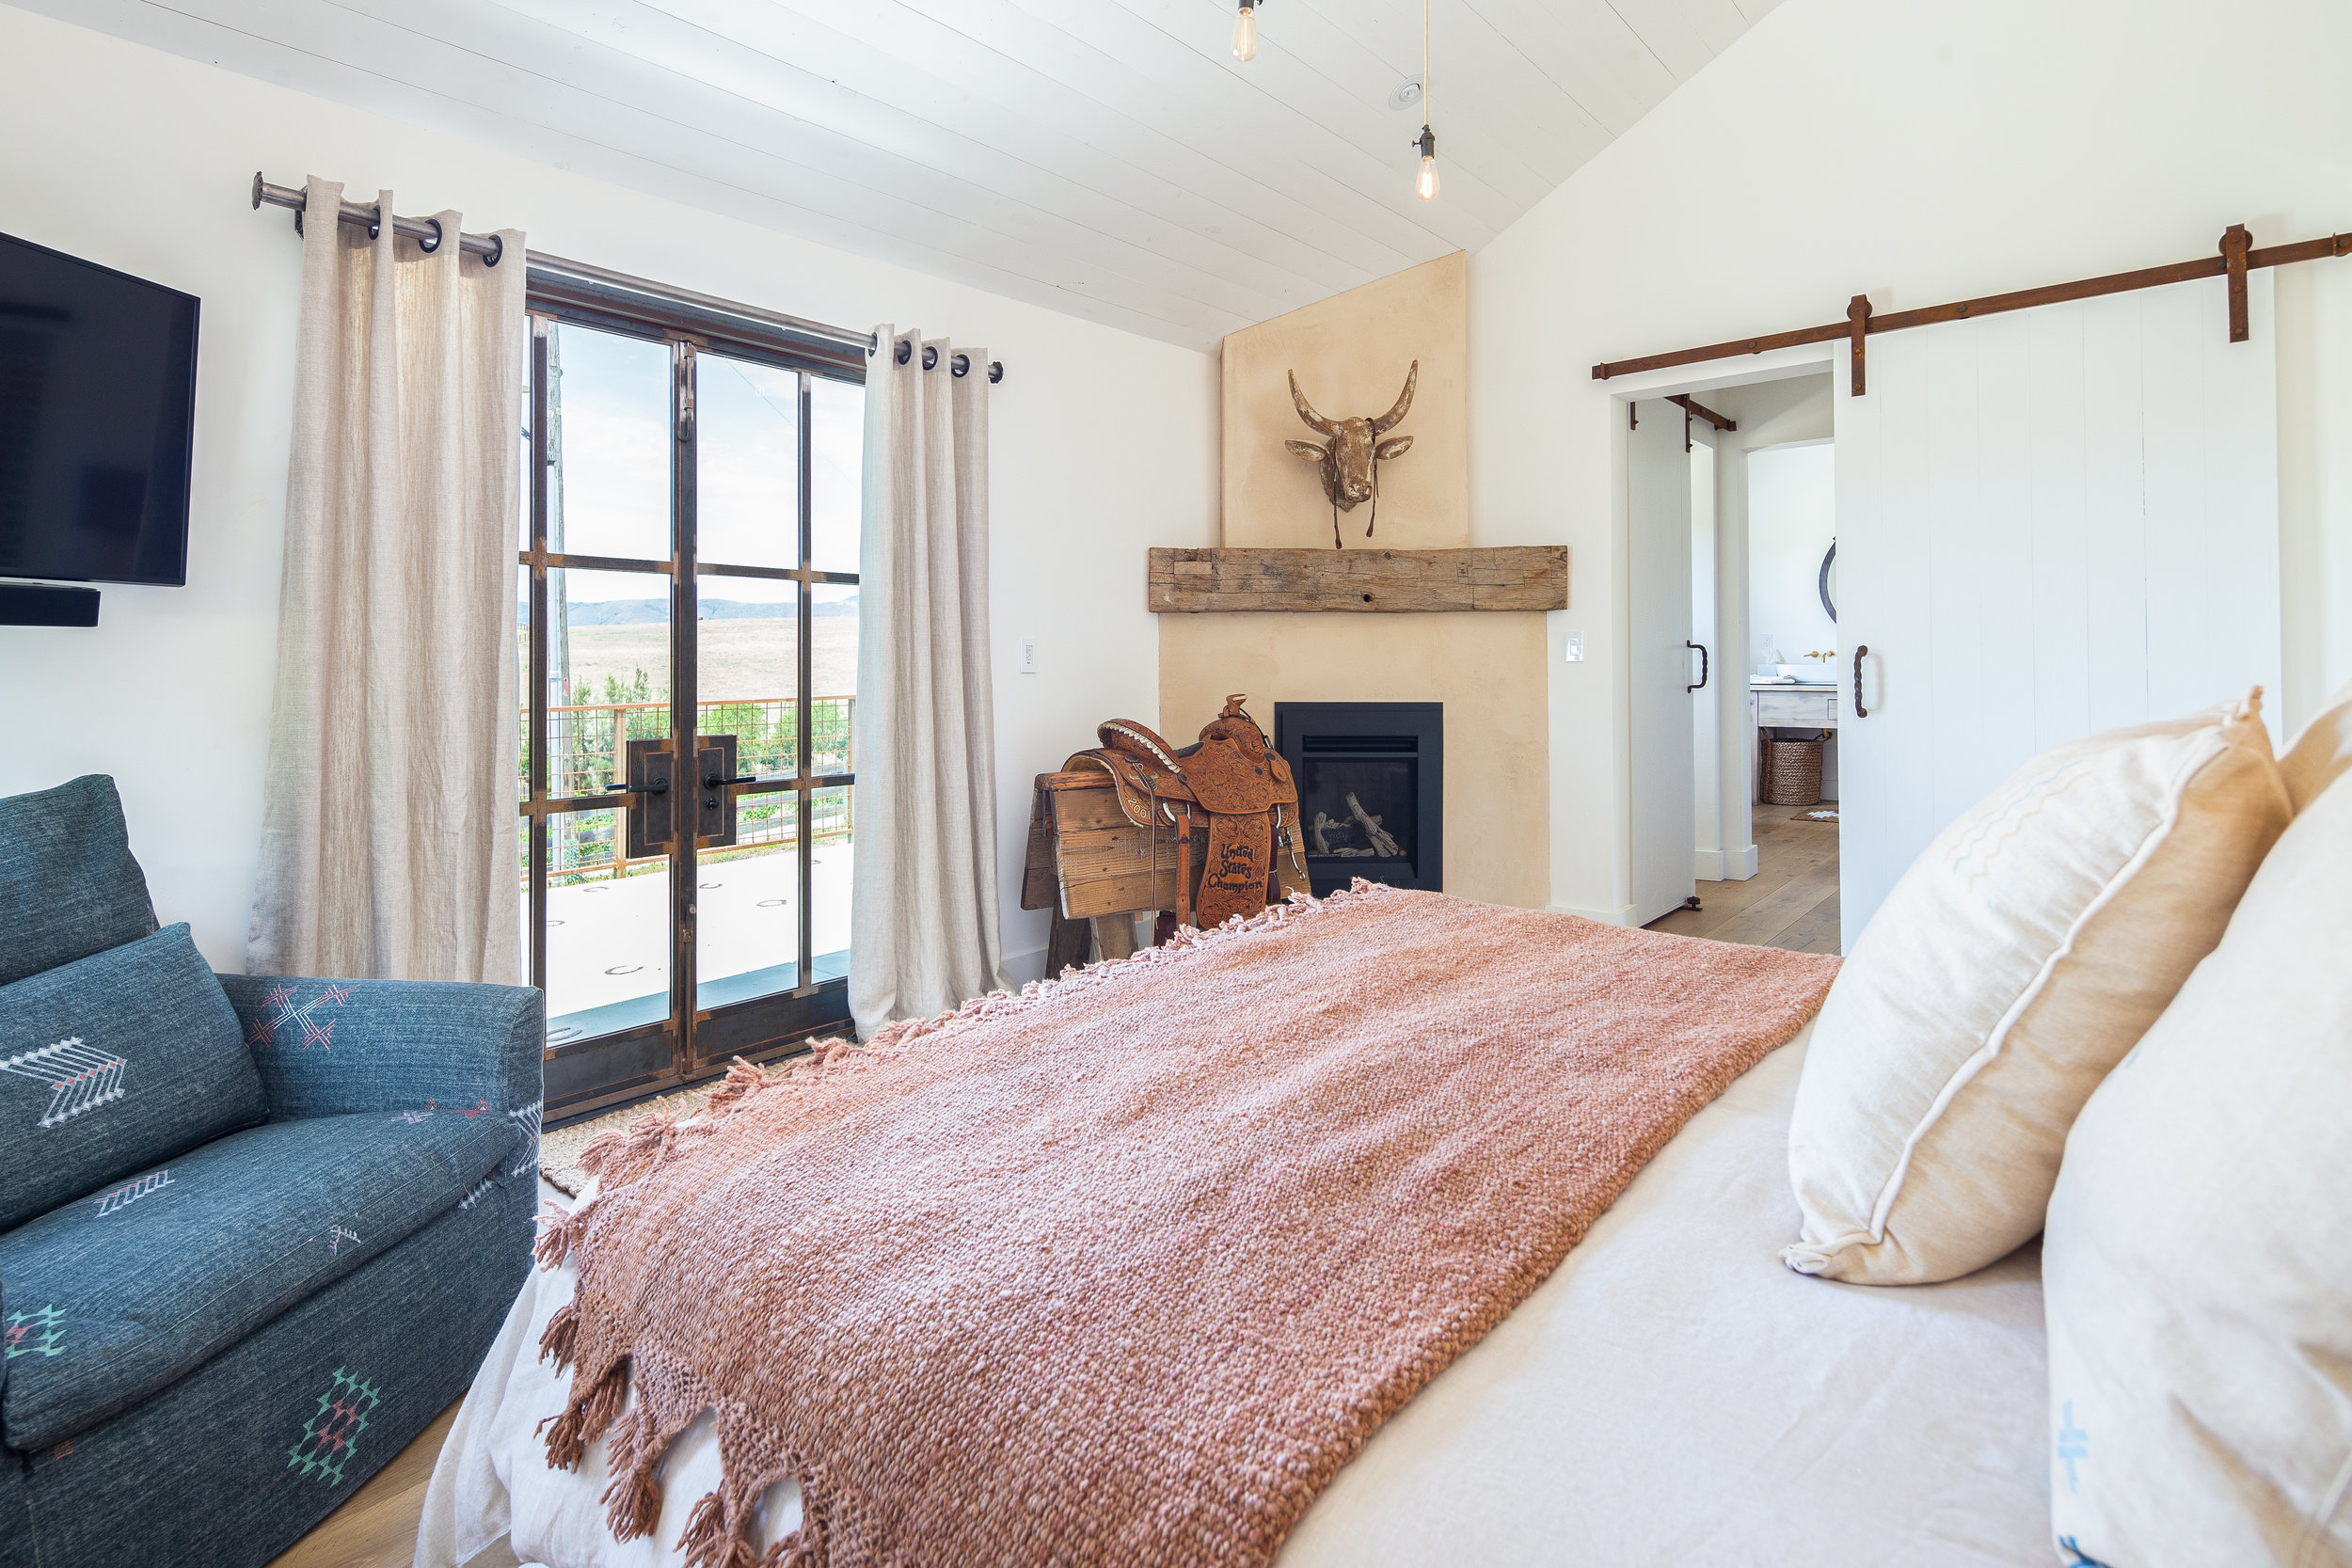 Rooms - Each room is uniquely designed with cohesive materials, curated from all over the world. TWO OF THE ROOMS HAVE QUEEN BEDS WHILE THE MASTER has A CALIFORNIA KING. ALL BEDS ARE MADE UP WITH PLUSH BELGIUM LINEN SHEETS AND duvets. All three of MarFarm's Bedrooms are outfitted with their own fireplace, ensuite bath room and smart HDTv.